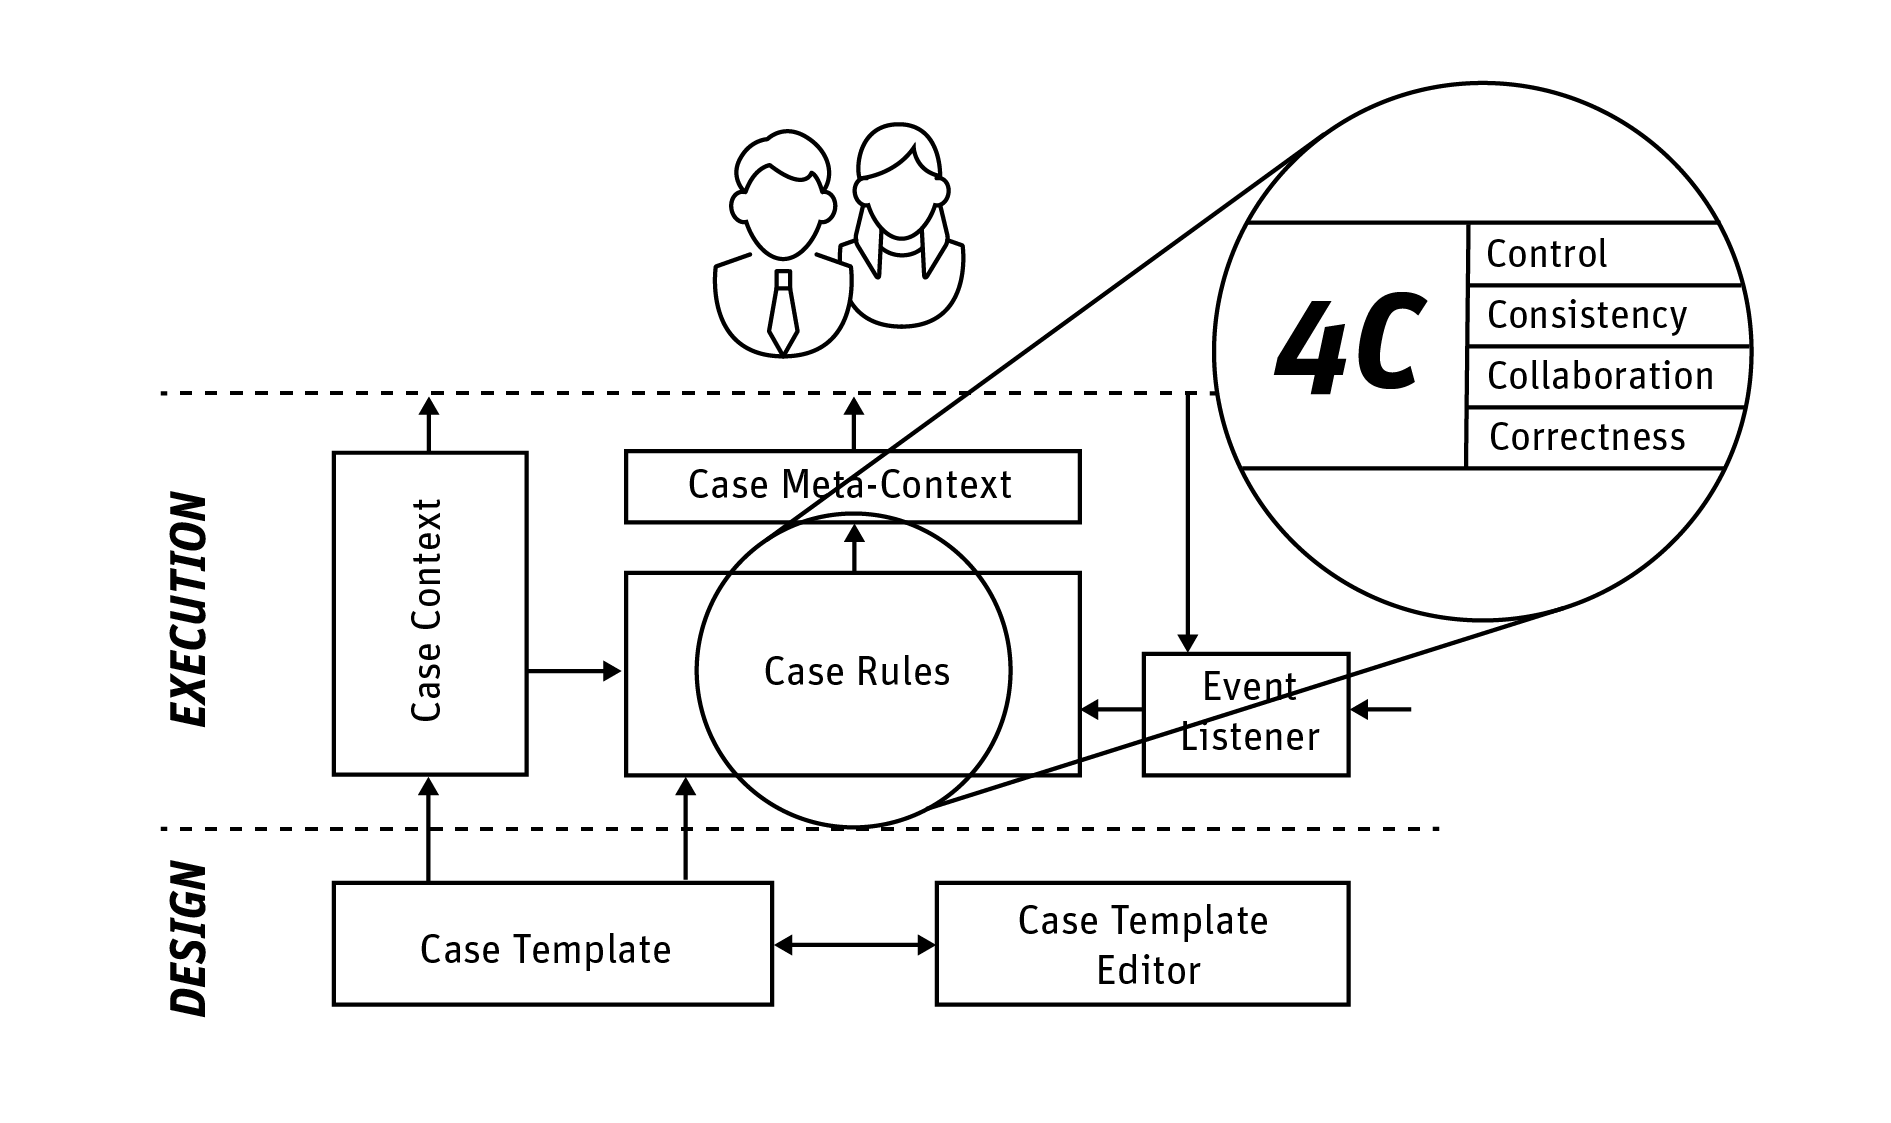 Case Rules